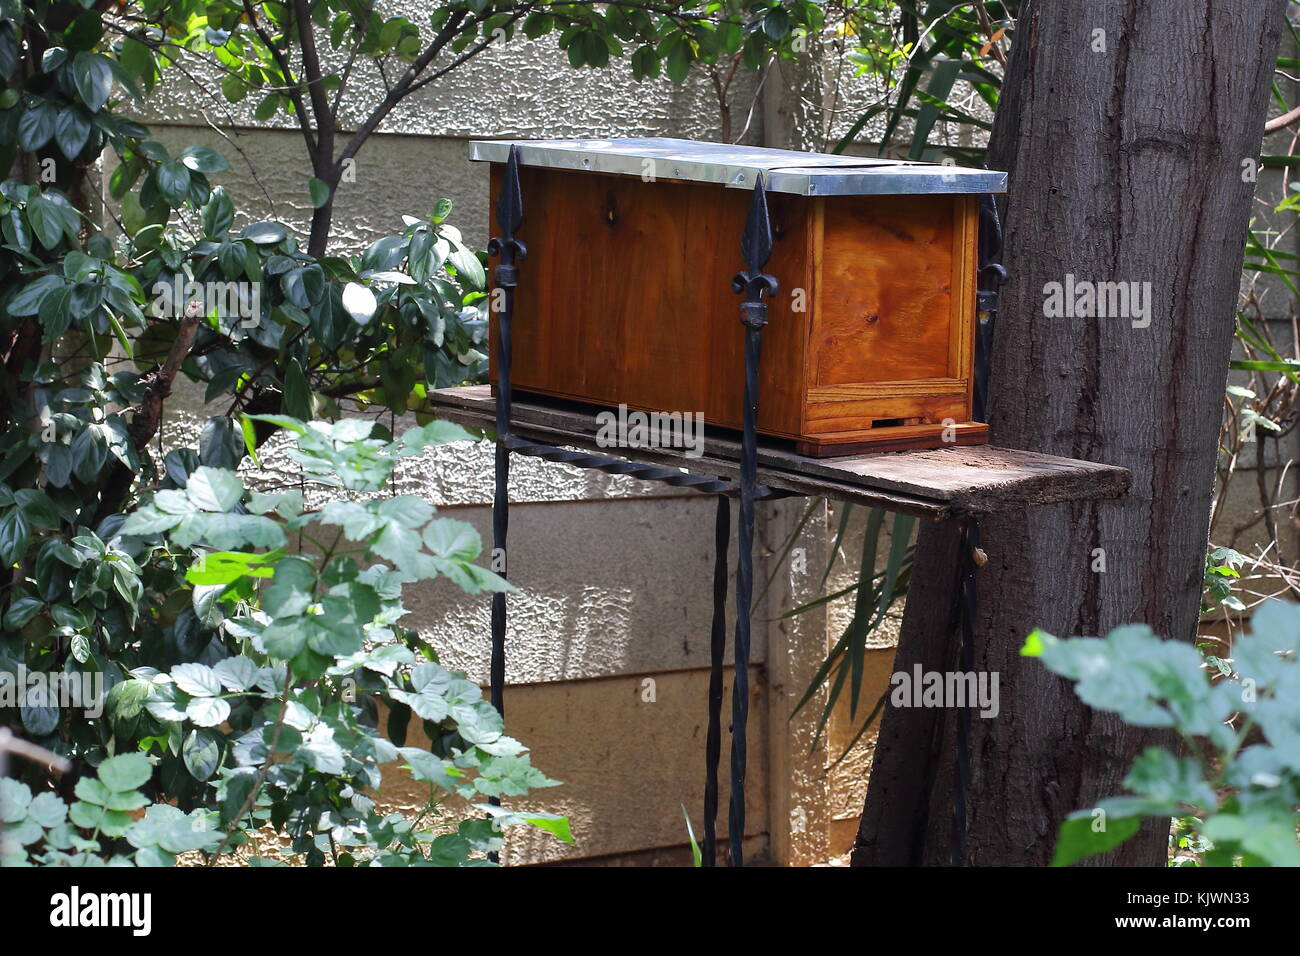 A swarm trap or a bait hive for honey bees in a residential garden in landscape format - Stock Image